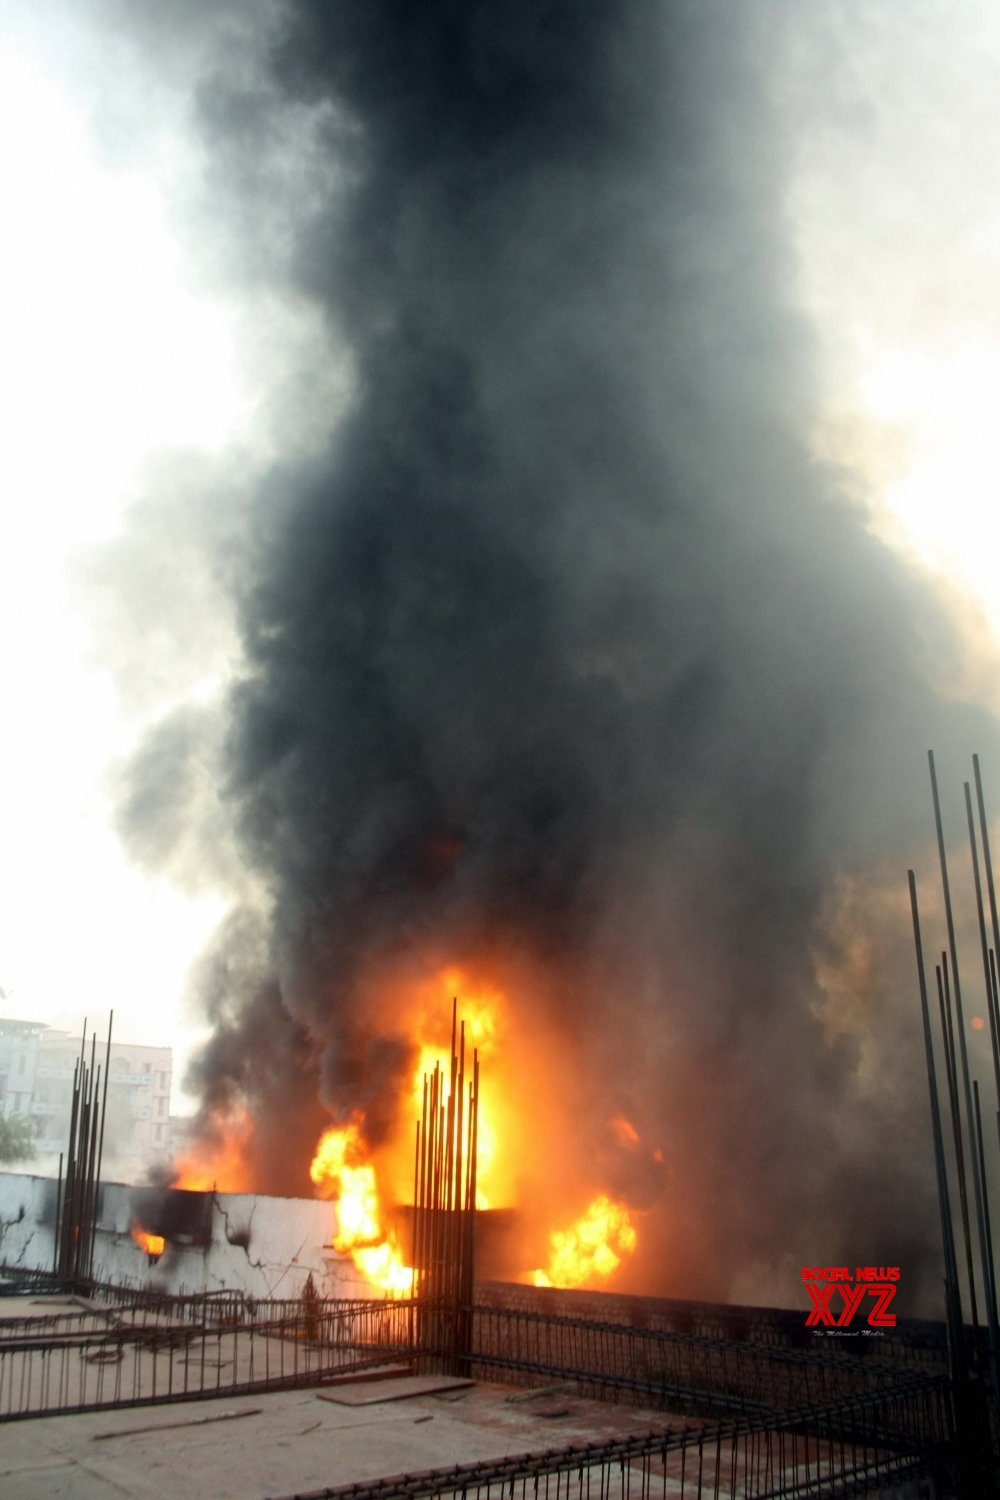 Patna: Fire breaks out at a plastic factory #Gallery